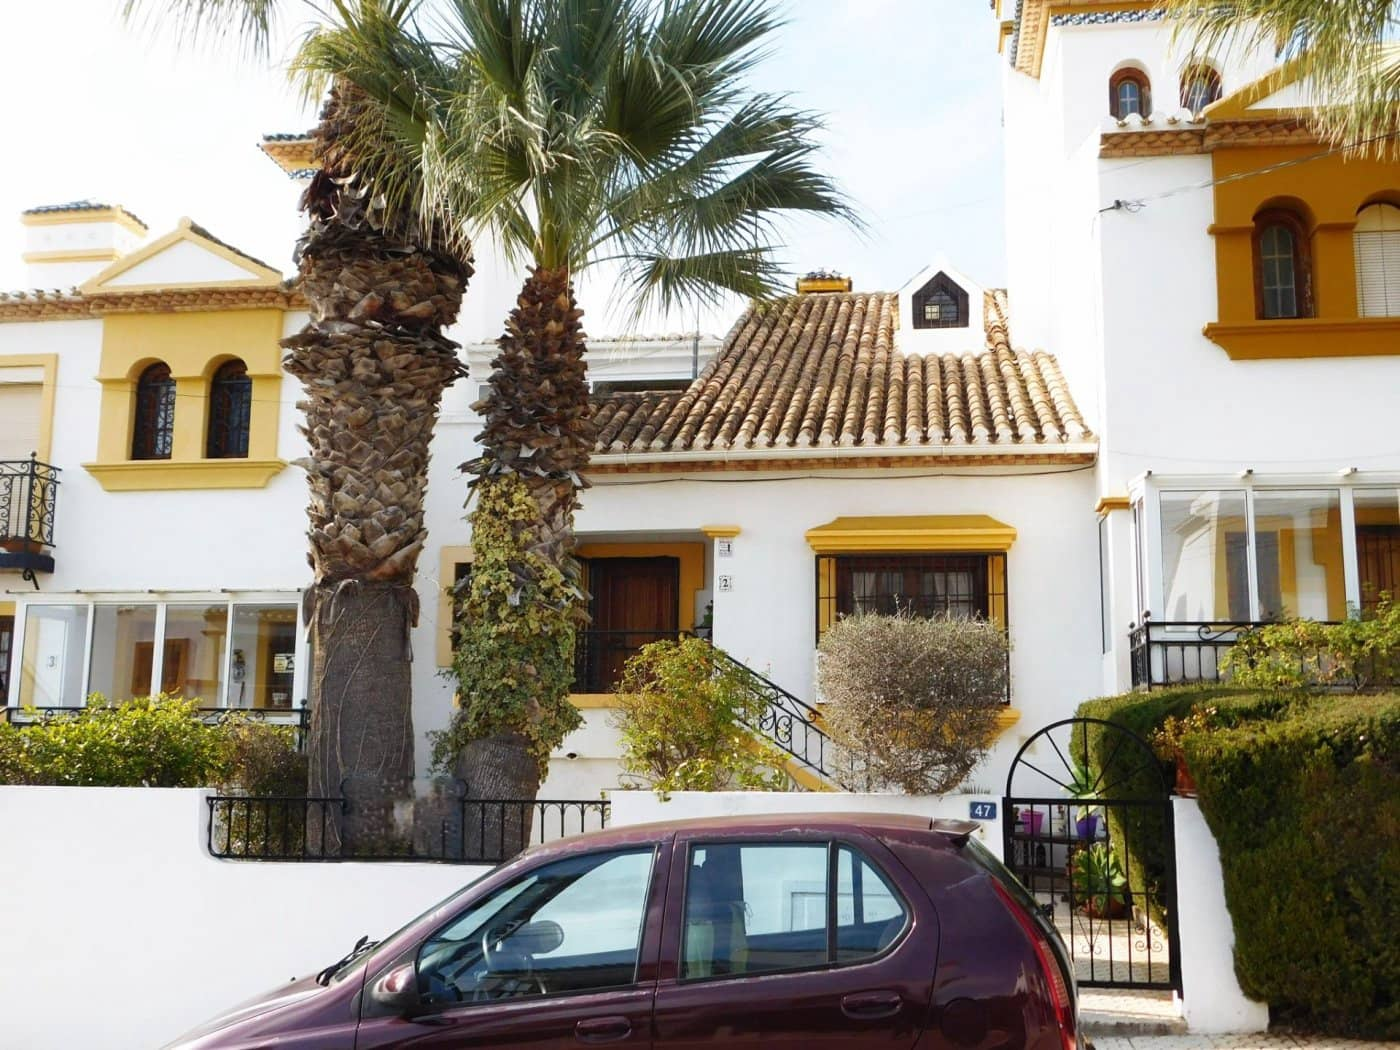 3 bedroom Apartment for sale in Villamartin with pool - € 175,000 (Ref: 6157605)